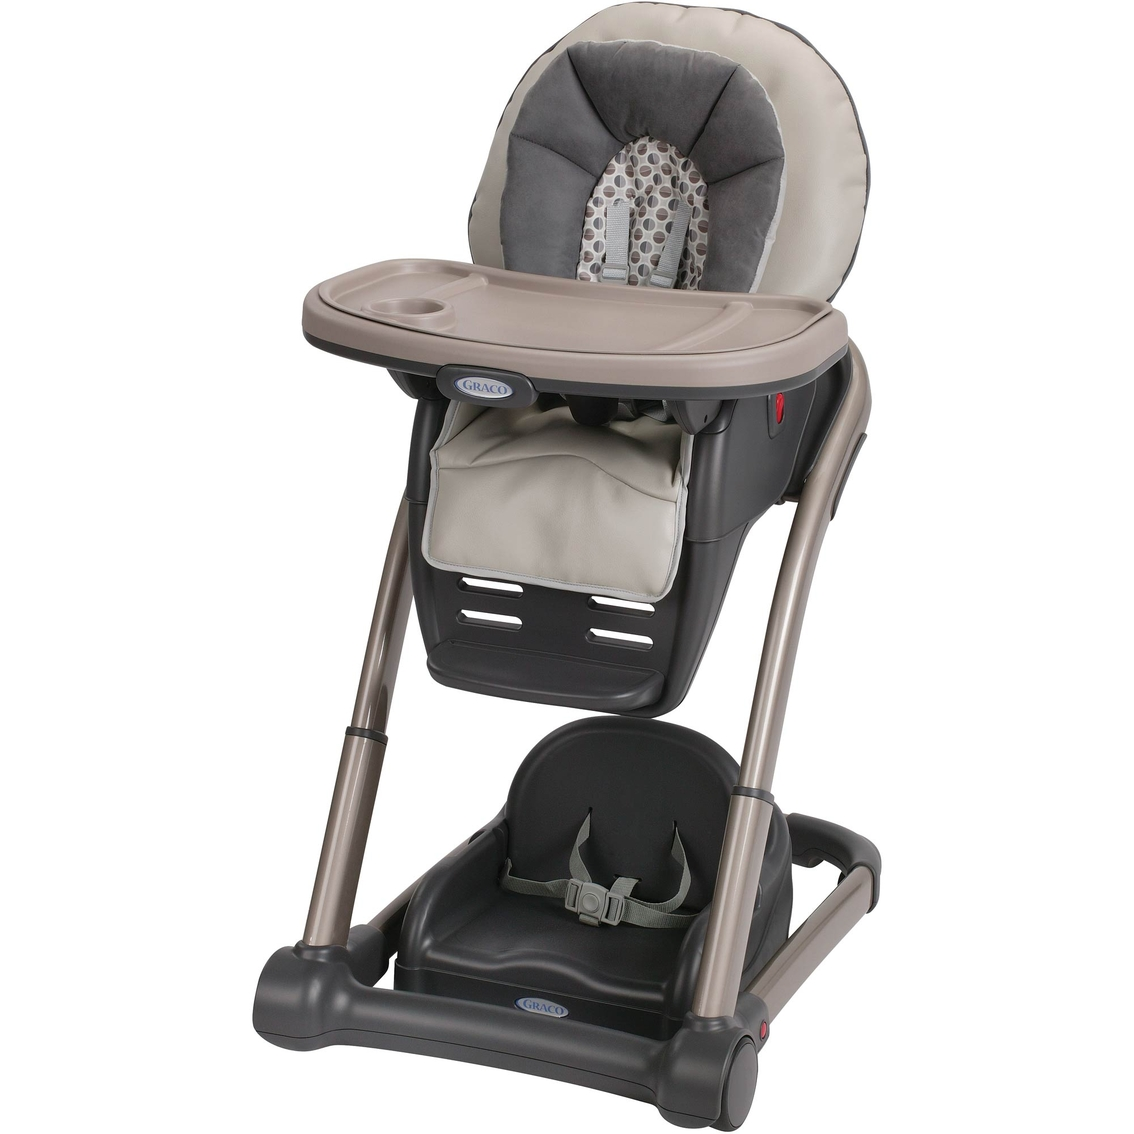 baby high chair toy r us covers dublin sale graco toys facesit sex